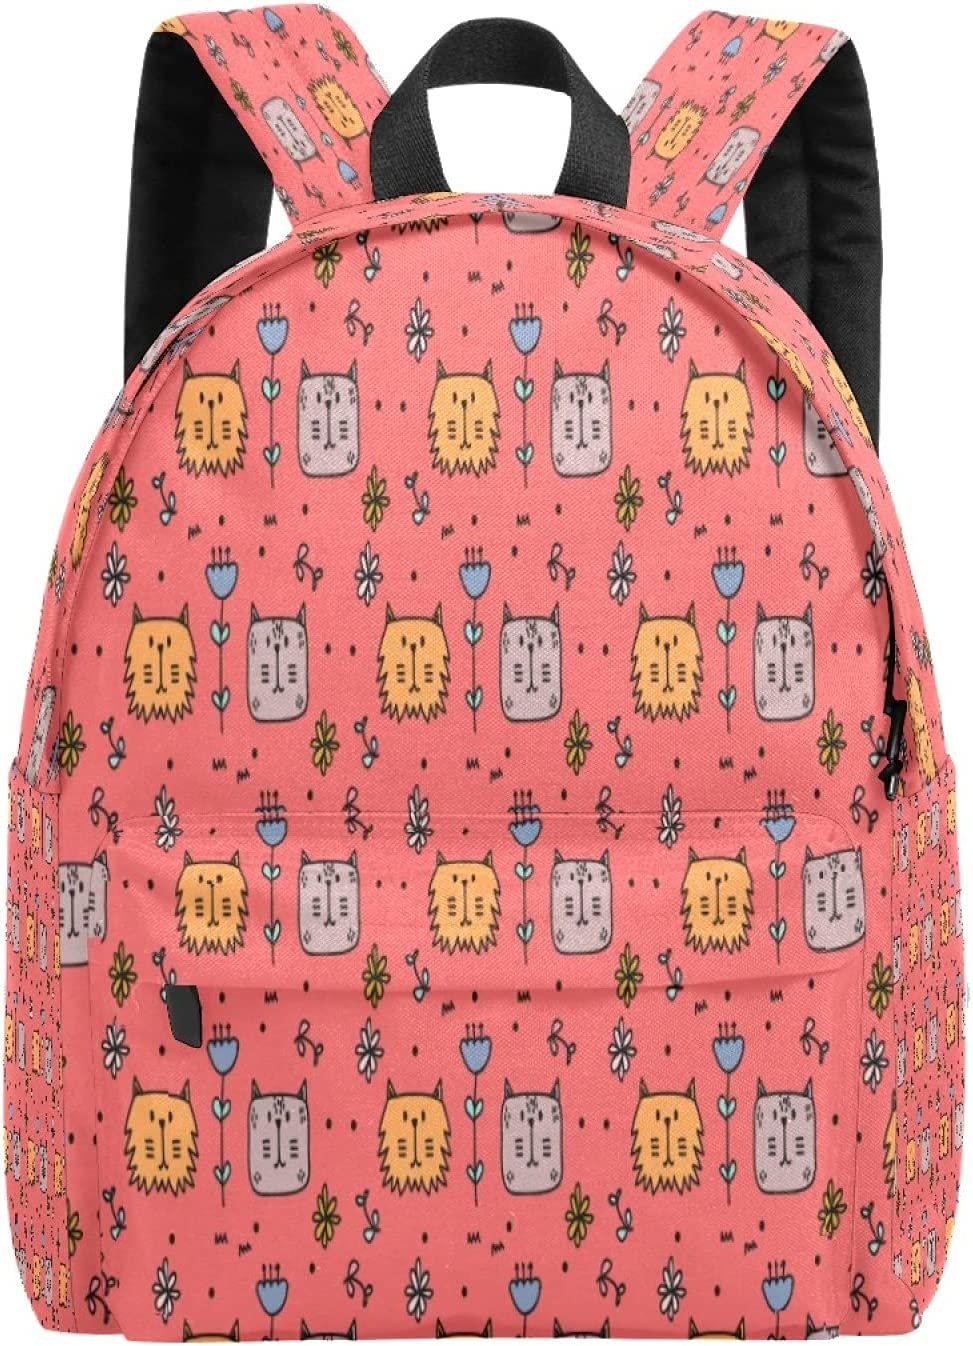 School Bag Backpack College Cats Max 87% OFF Casual Flowers Beauty products And L